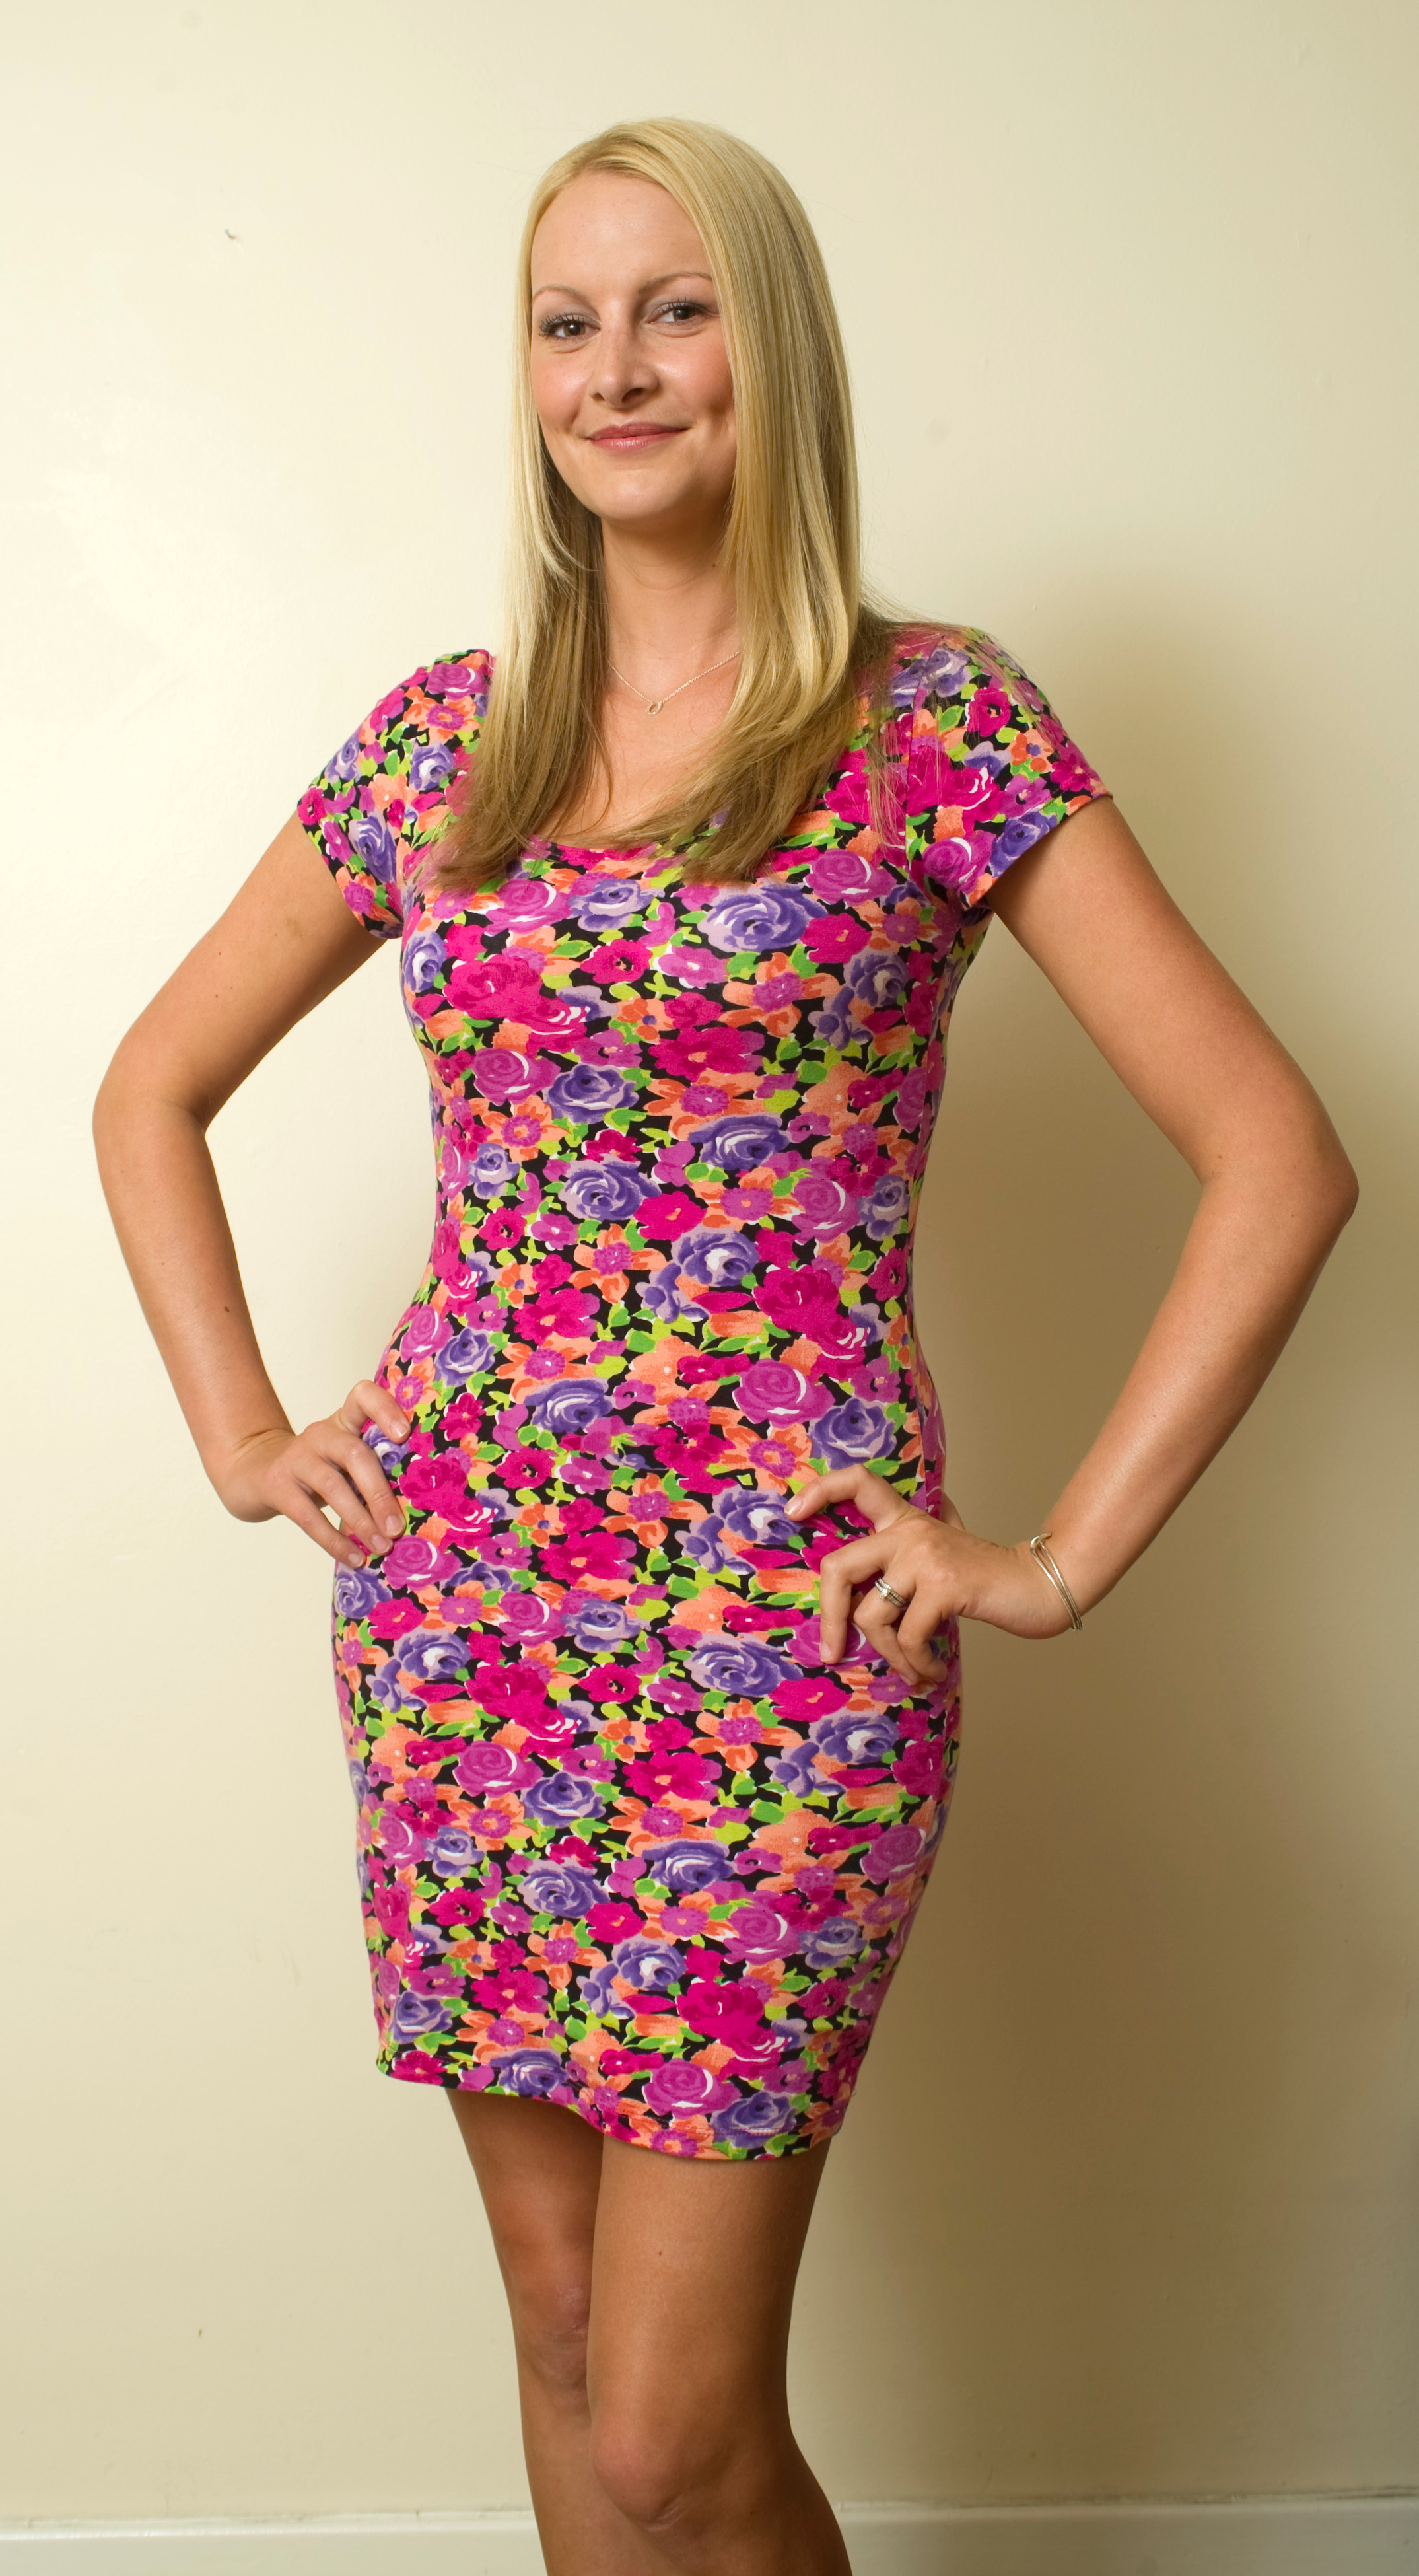 Mandy Cooke helps you find the best bargains